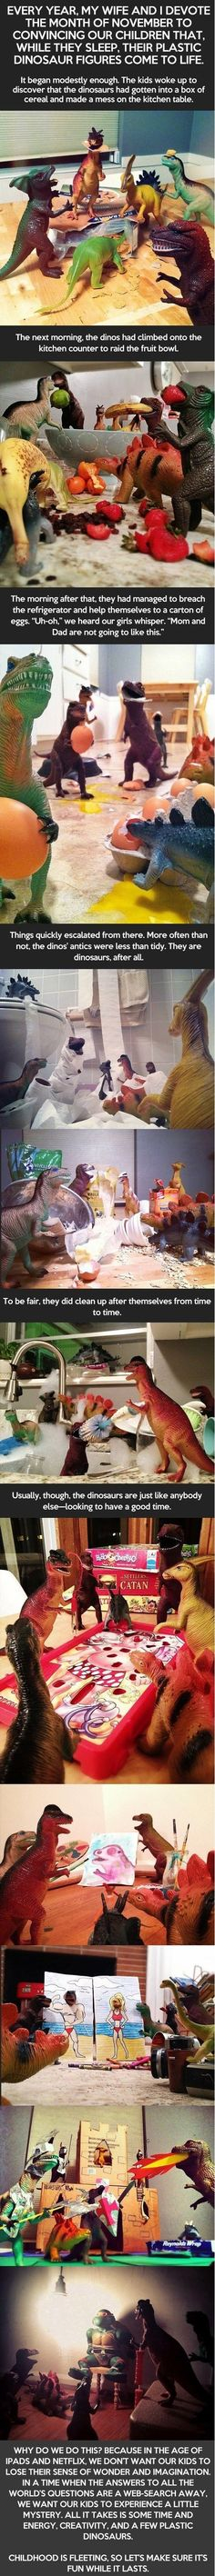 While Their Kids Sleep, These Parents Pull Off This Amazing Stunt: Plastic Dinosaur Figures Come to Life. haha that's fun Haha, Random Stuff, Cool Stuff, Funny Stuff, Kid Stuff, Funny Things, Wow Art, Kids Sleep, To Infinity And Beyond